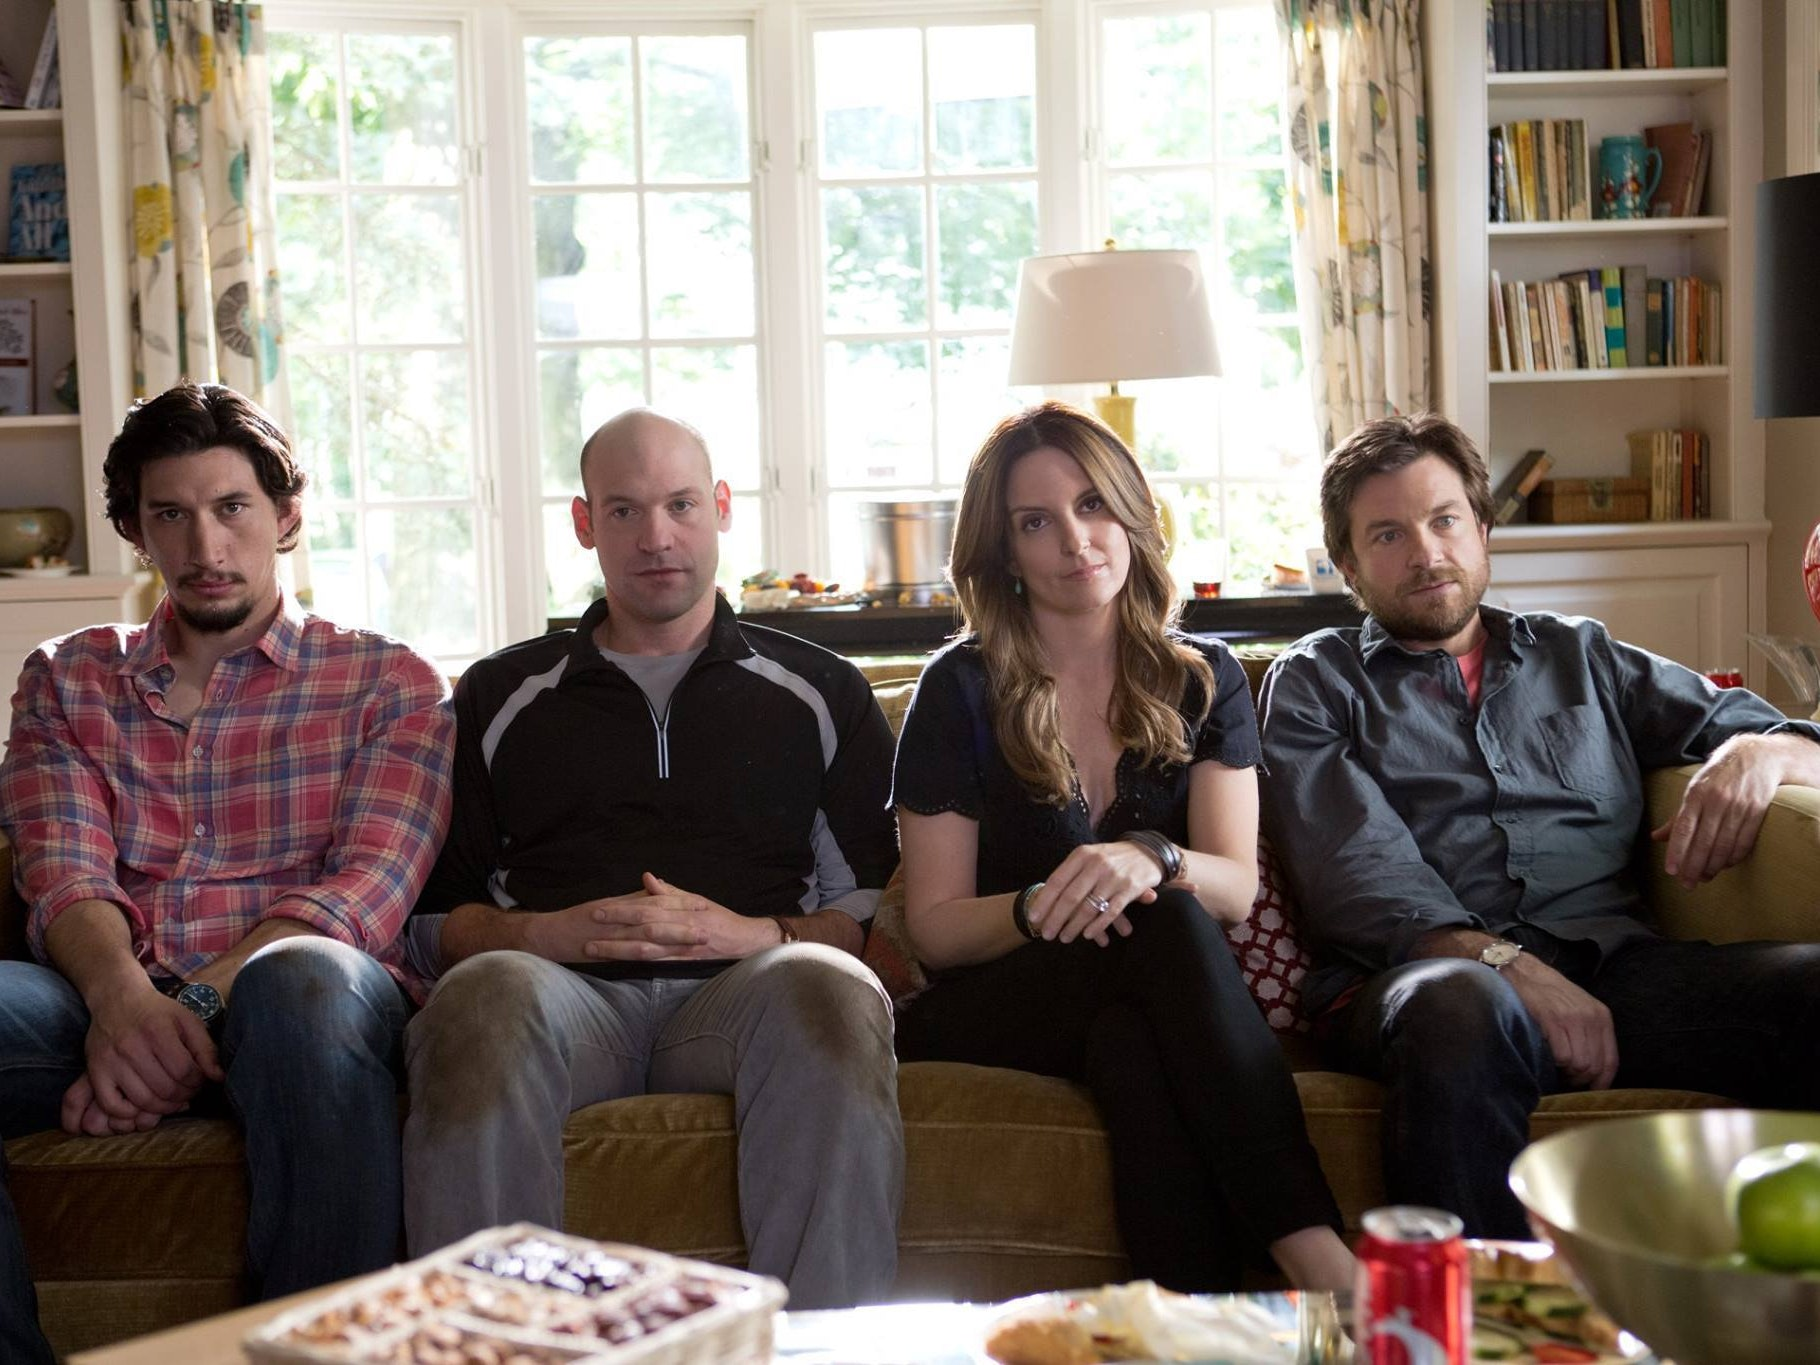 The Worst Family Movies For Thanksgiving